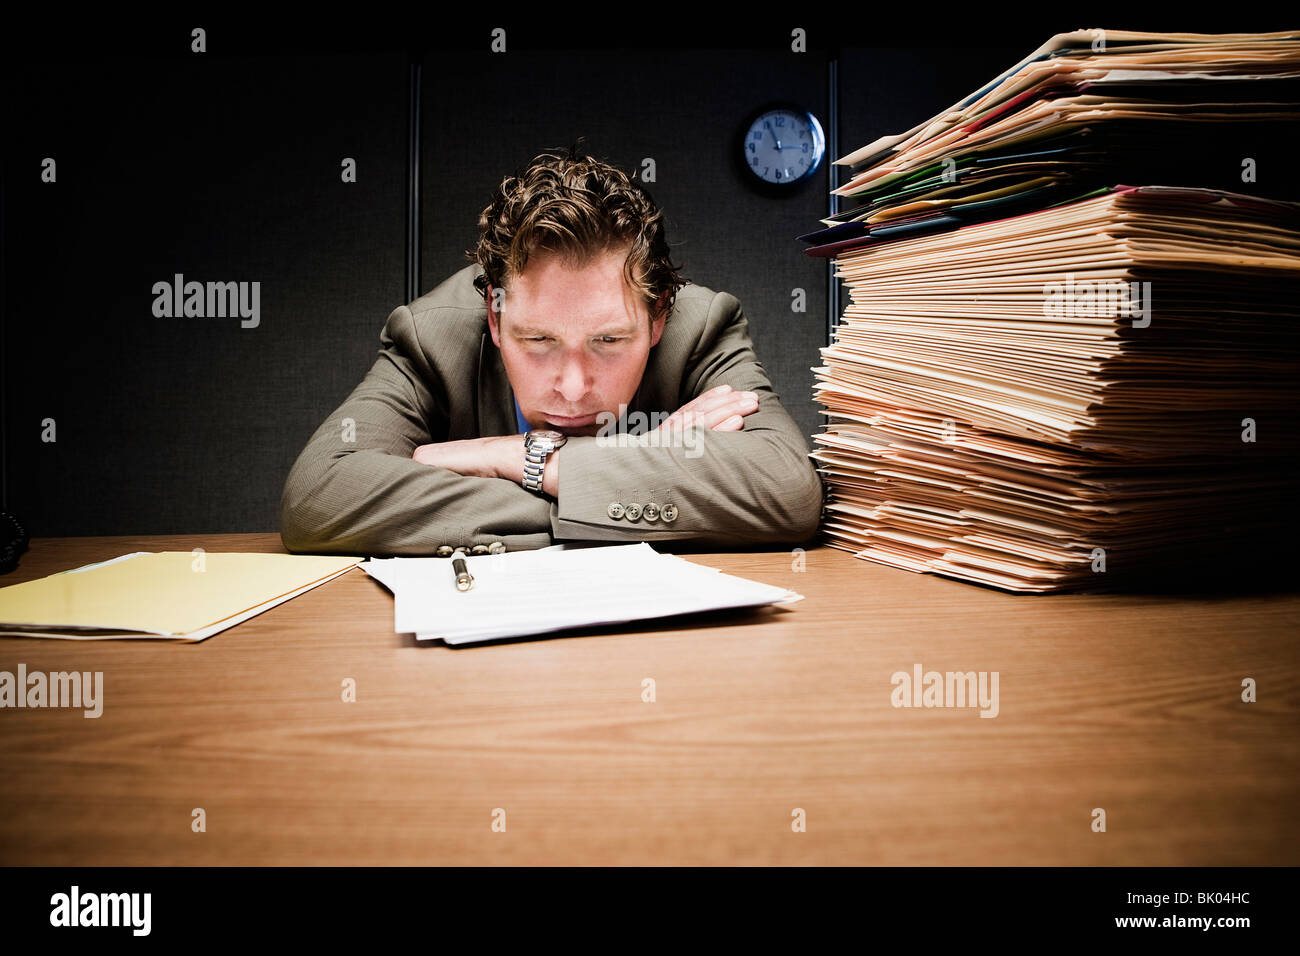 Stressed man with head down on desk - Stock Image